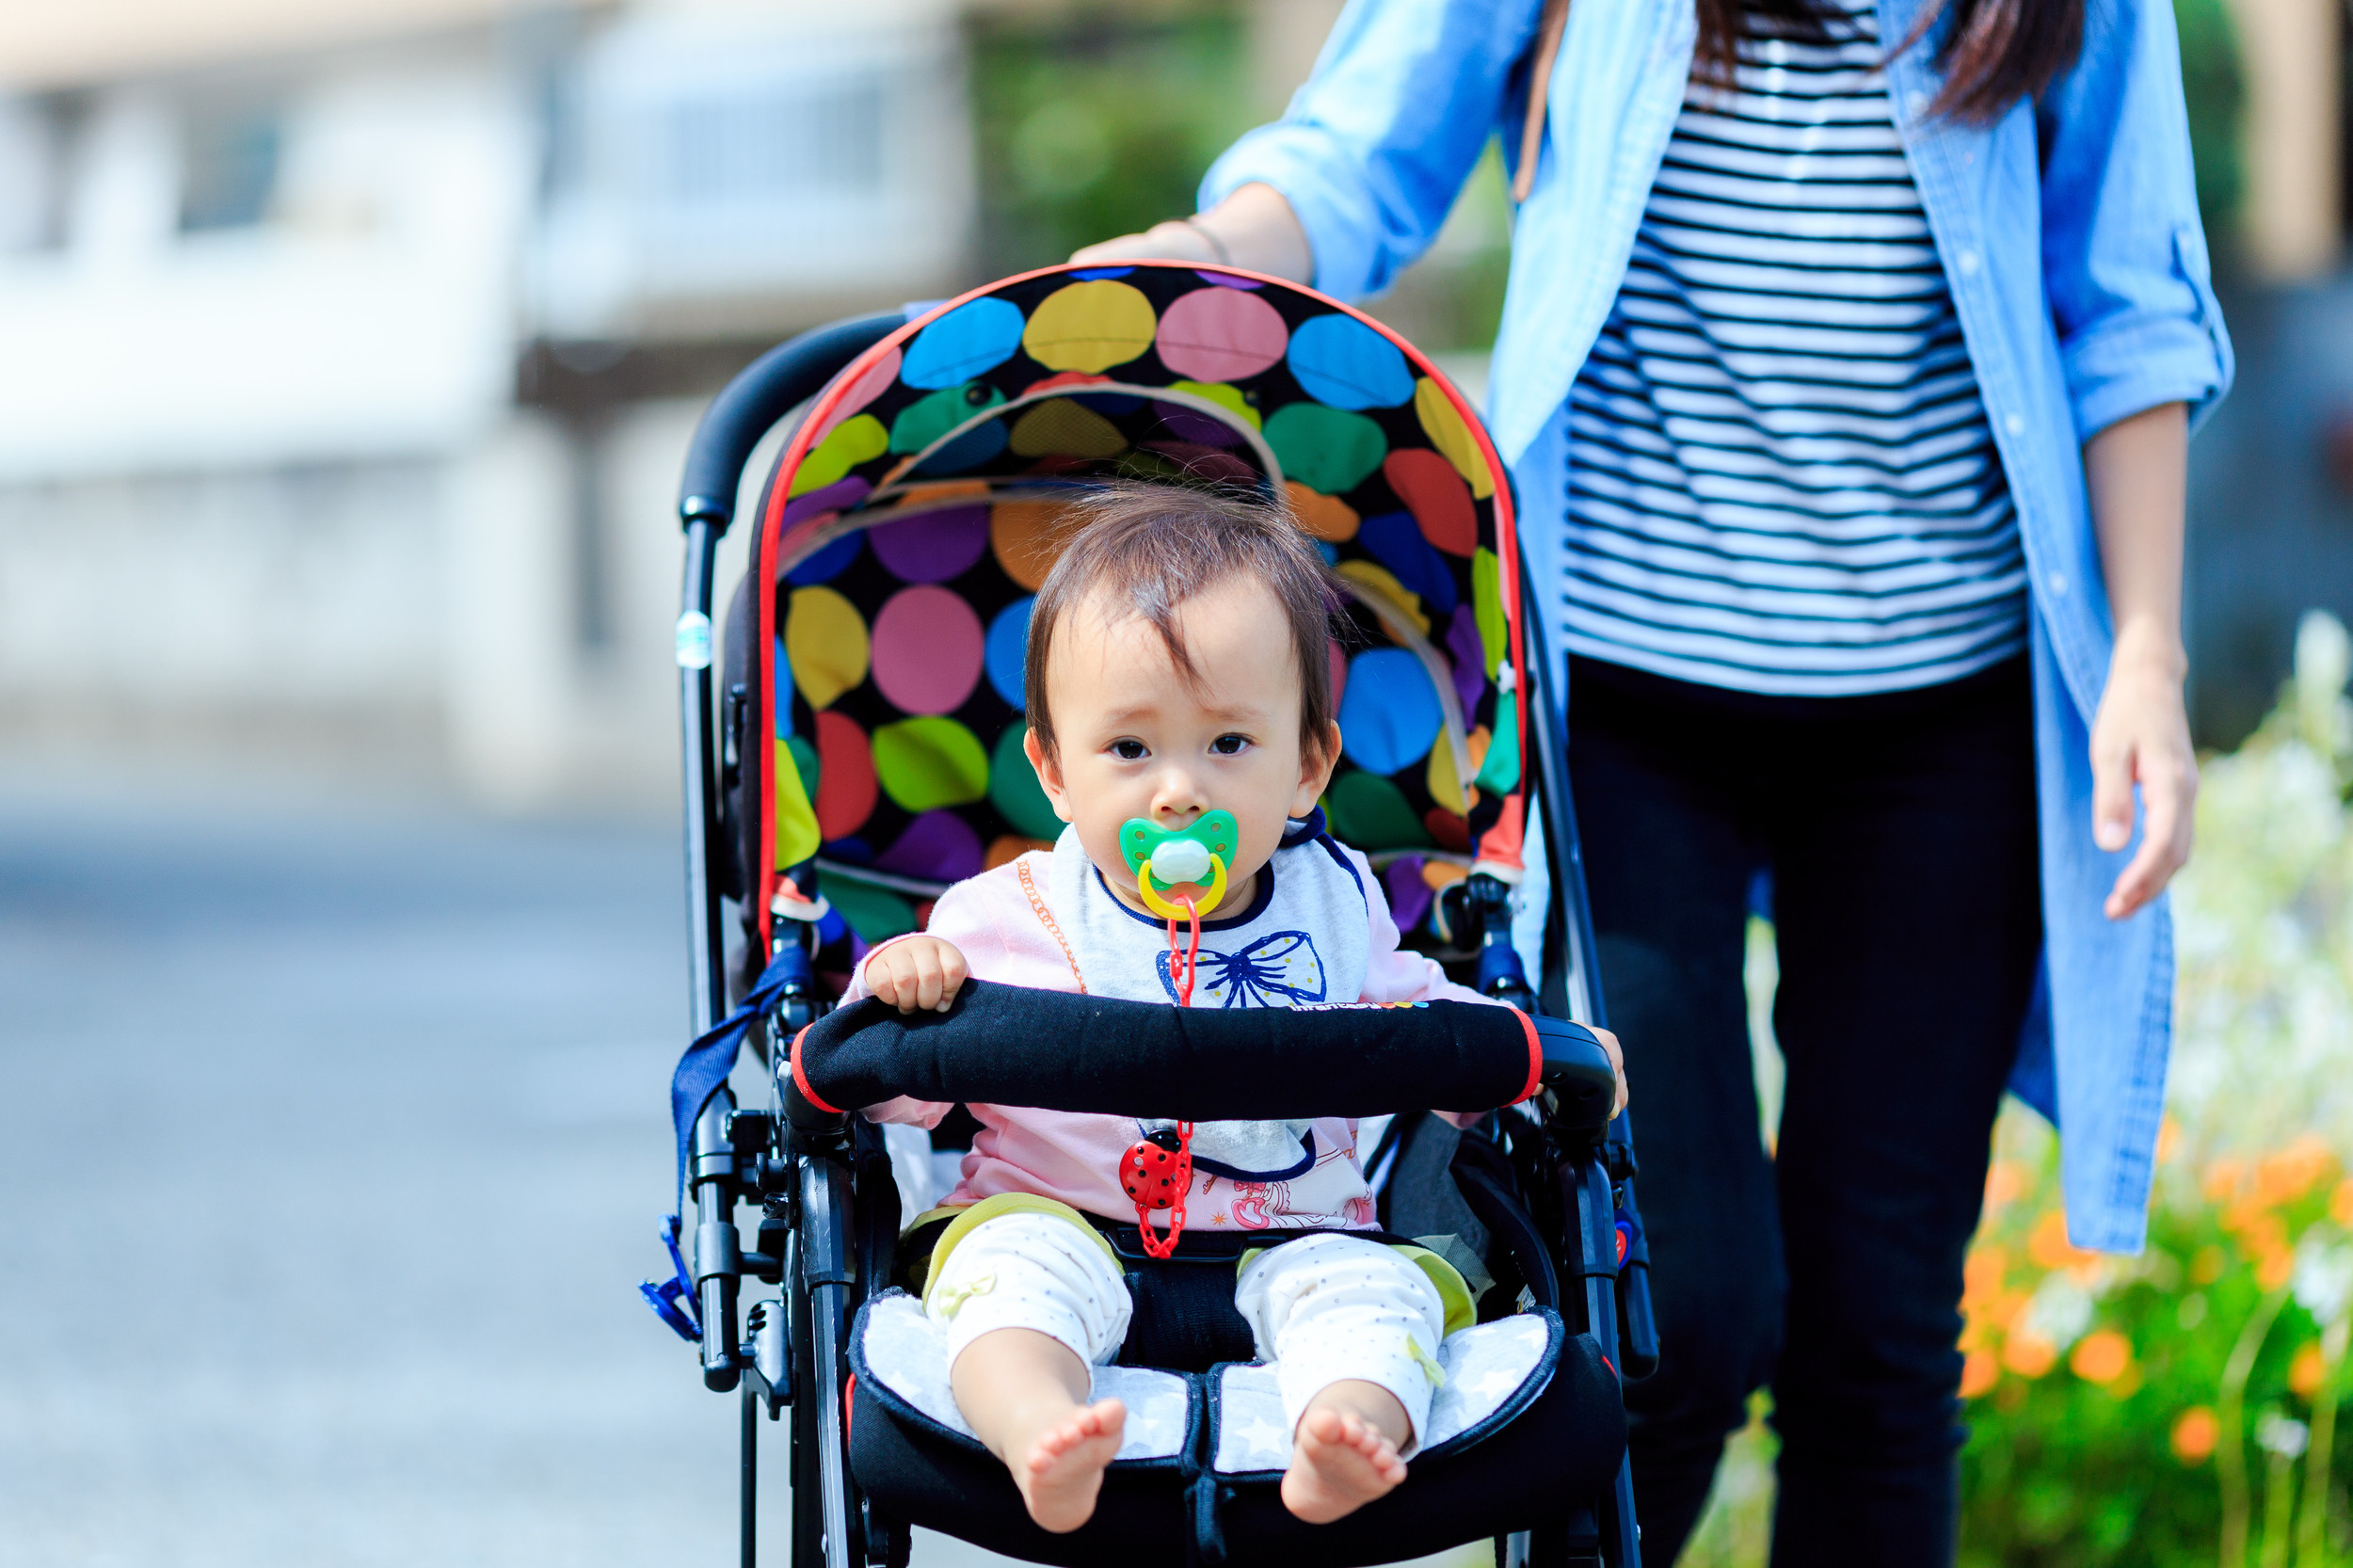 Can I afford a baby? 4 simple tips to get prepared